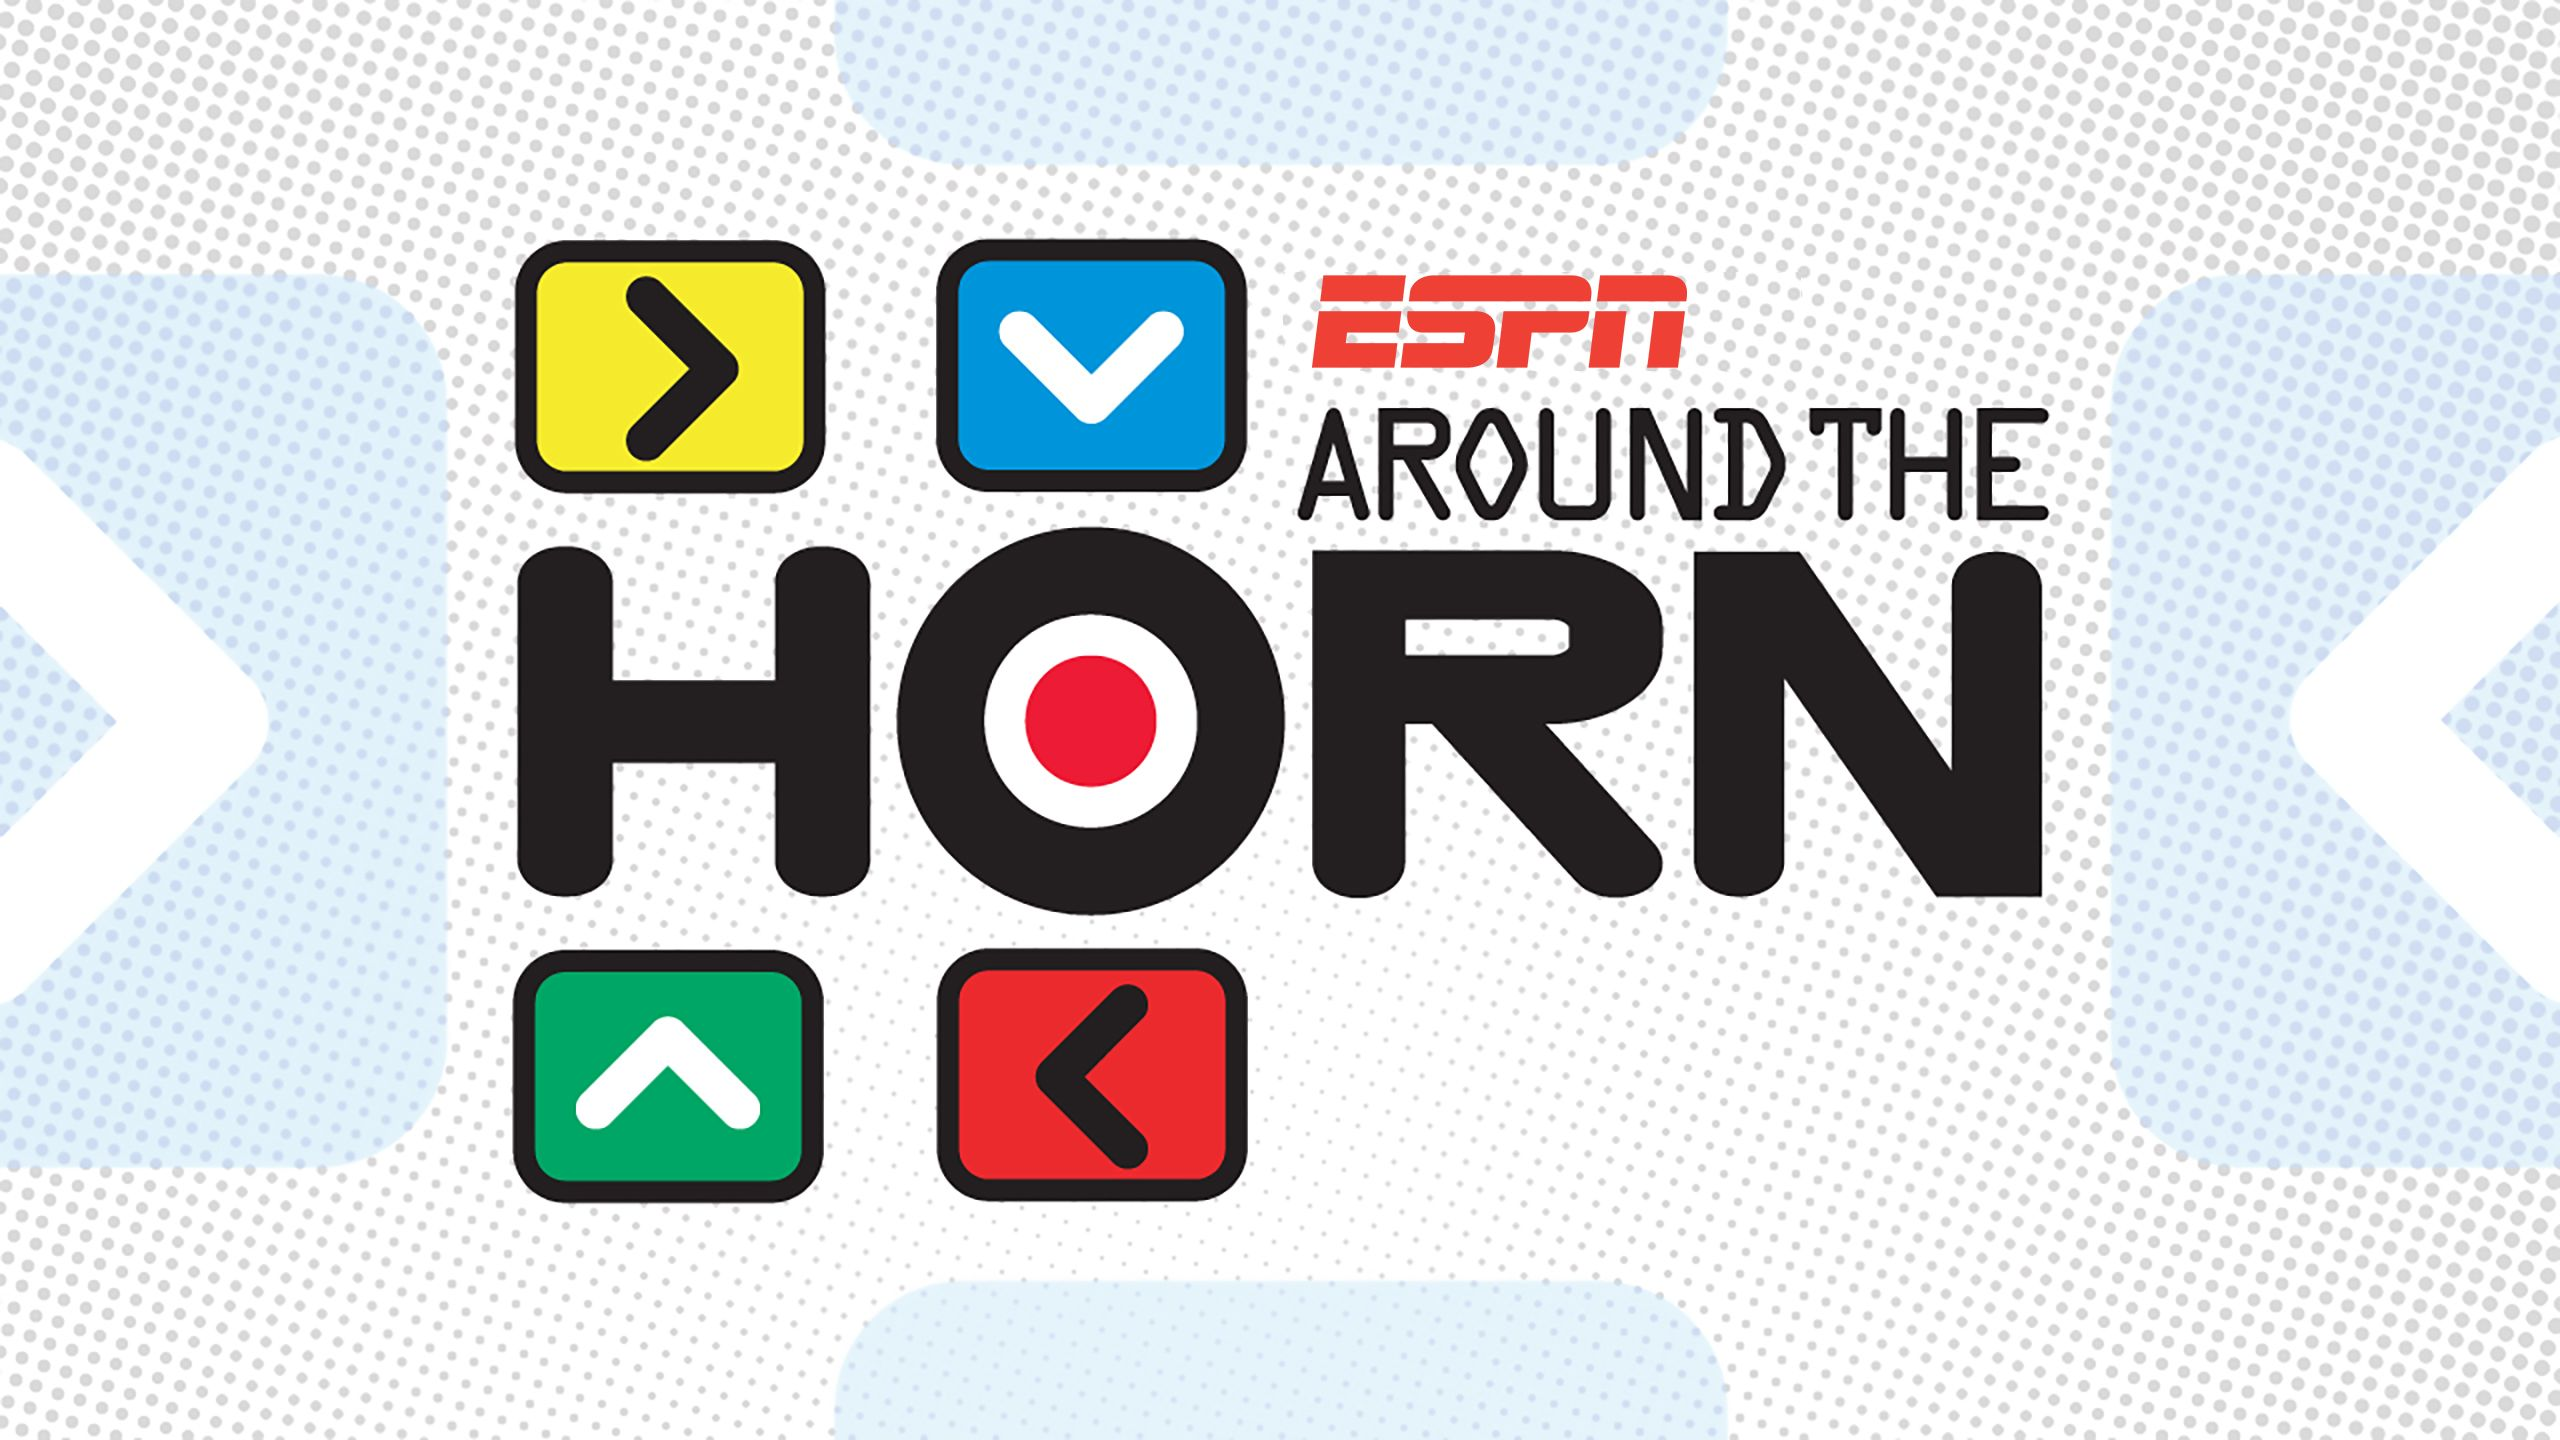 Mon, 4/23 - Around The Horn